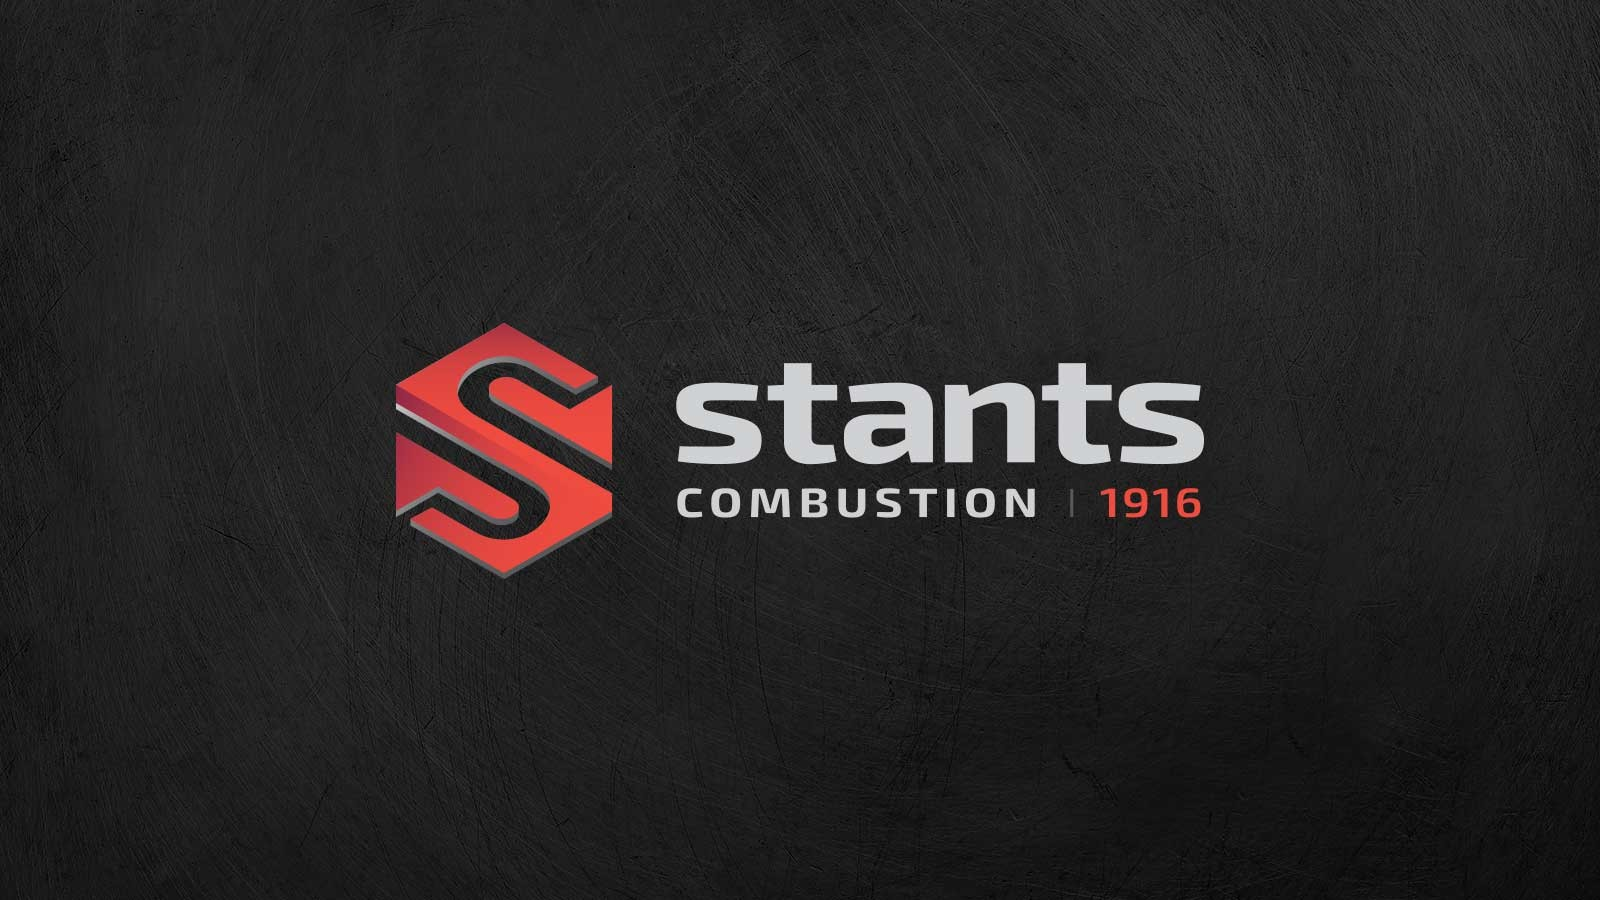 Stants Combustion